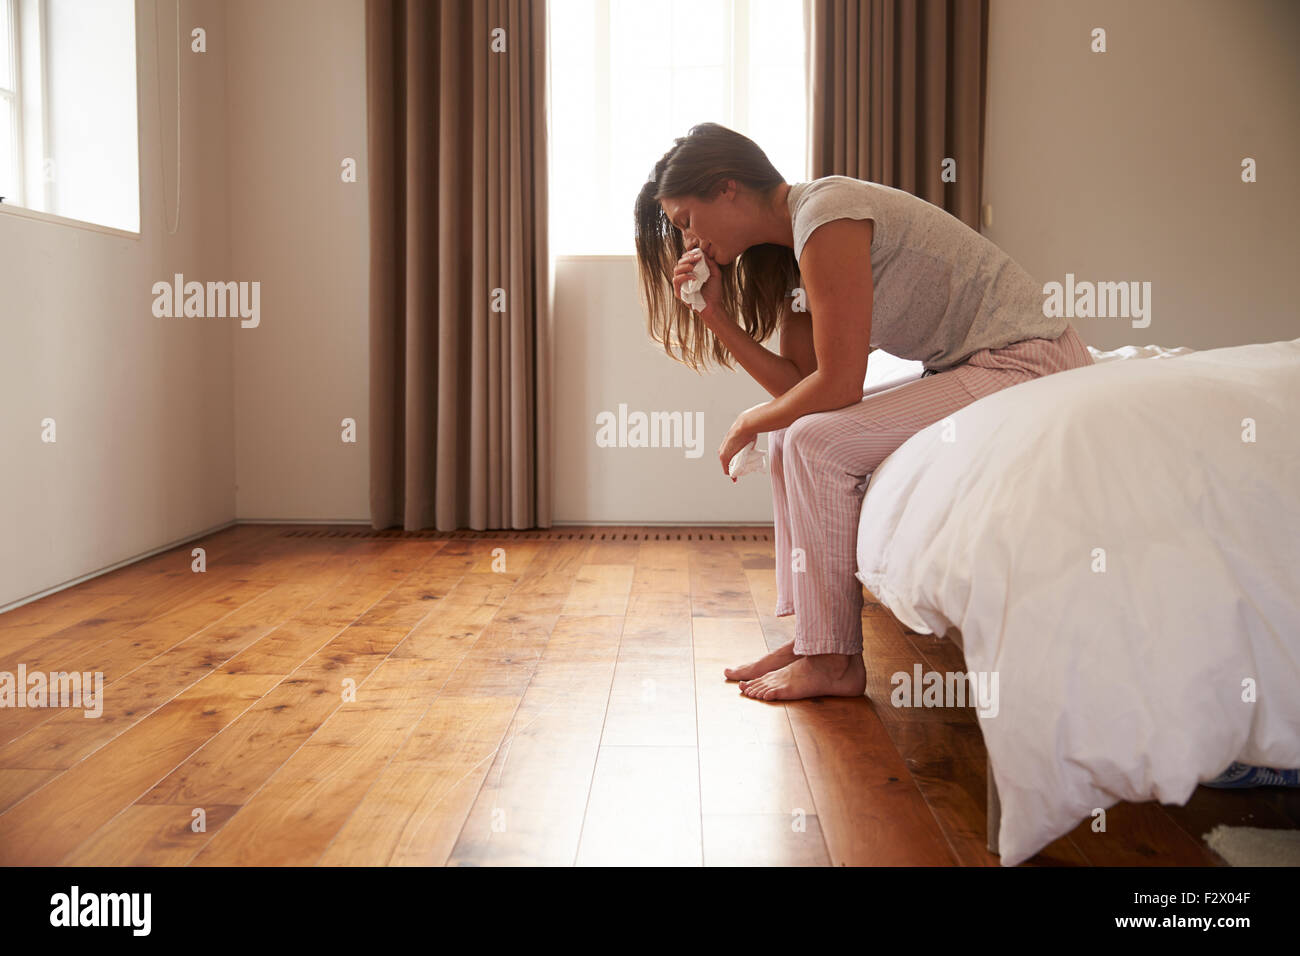 Woman Suffering From Depression Sitting On Bed And Crying - Stock Image